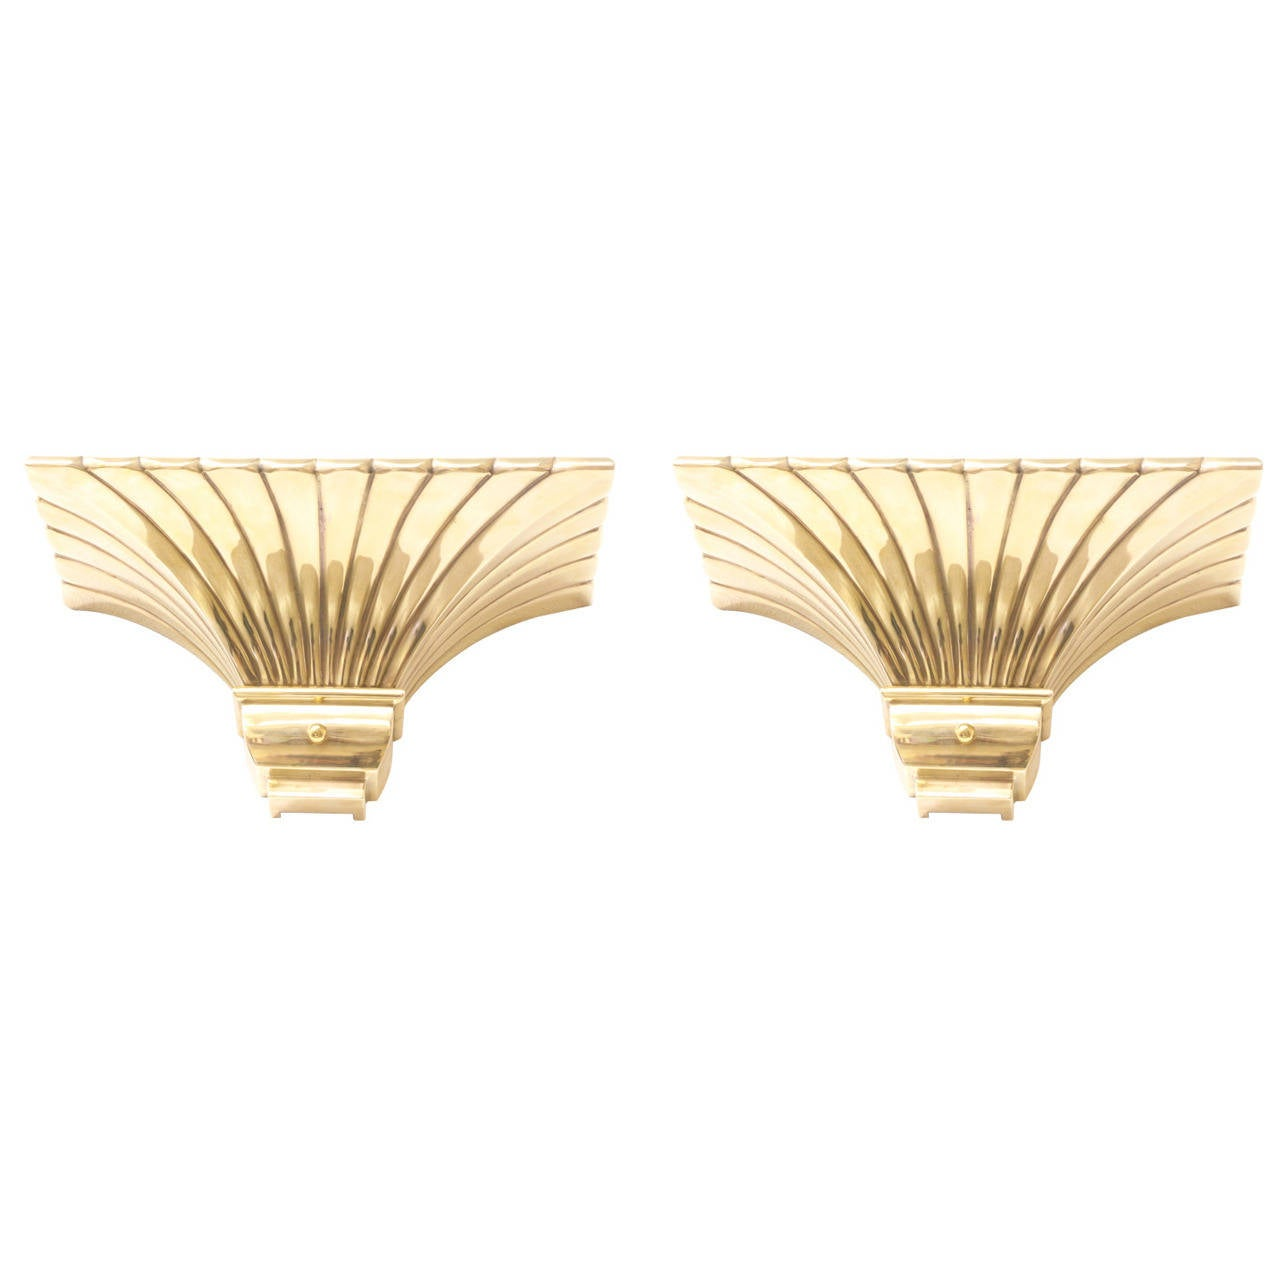 Chapman Brass Wall Sconces : Vintage Brass Sconces by Chapman For Sale at 1stdibs